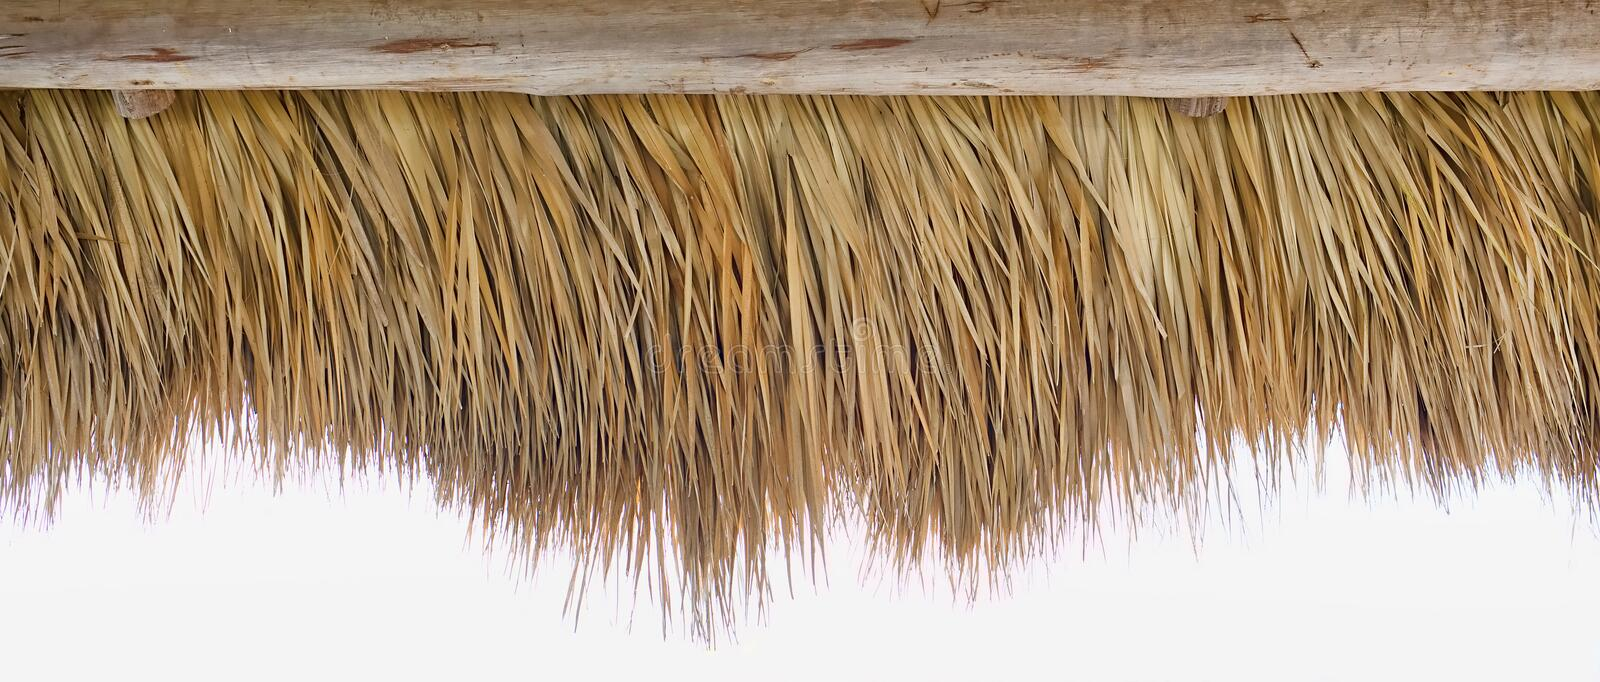 Tiki Thatch Strip Border royaltyfri bild